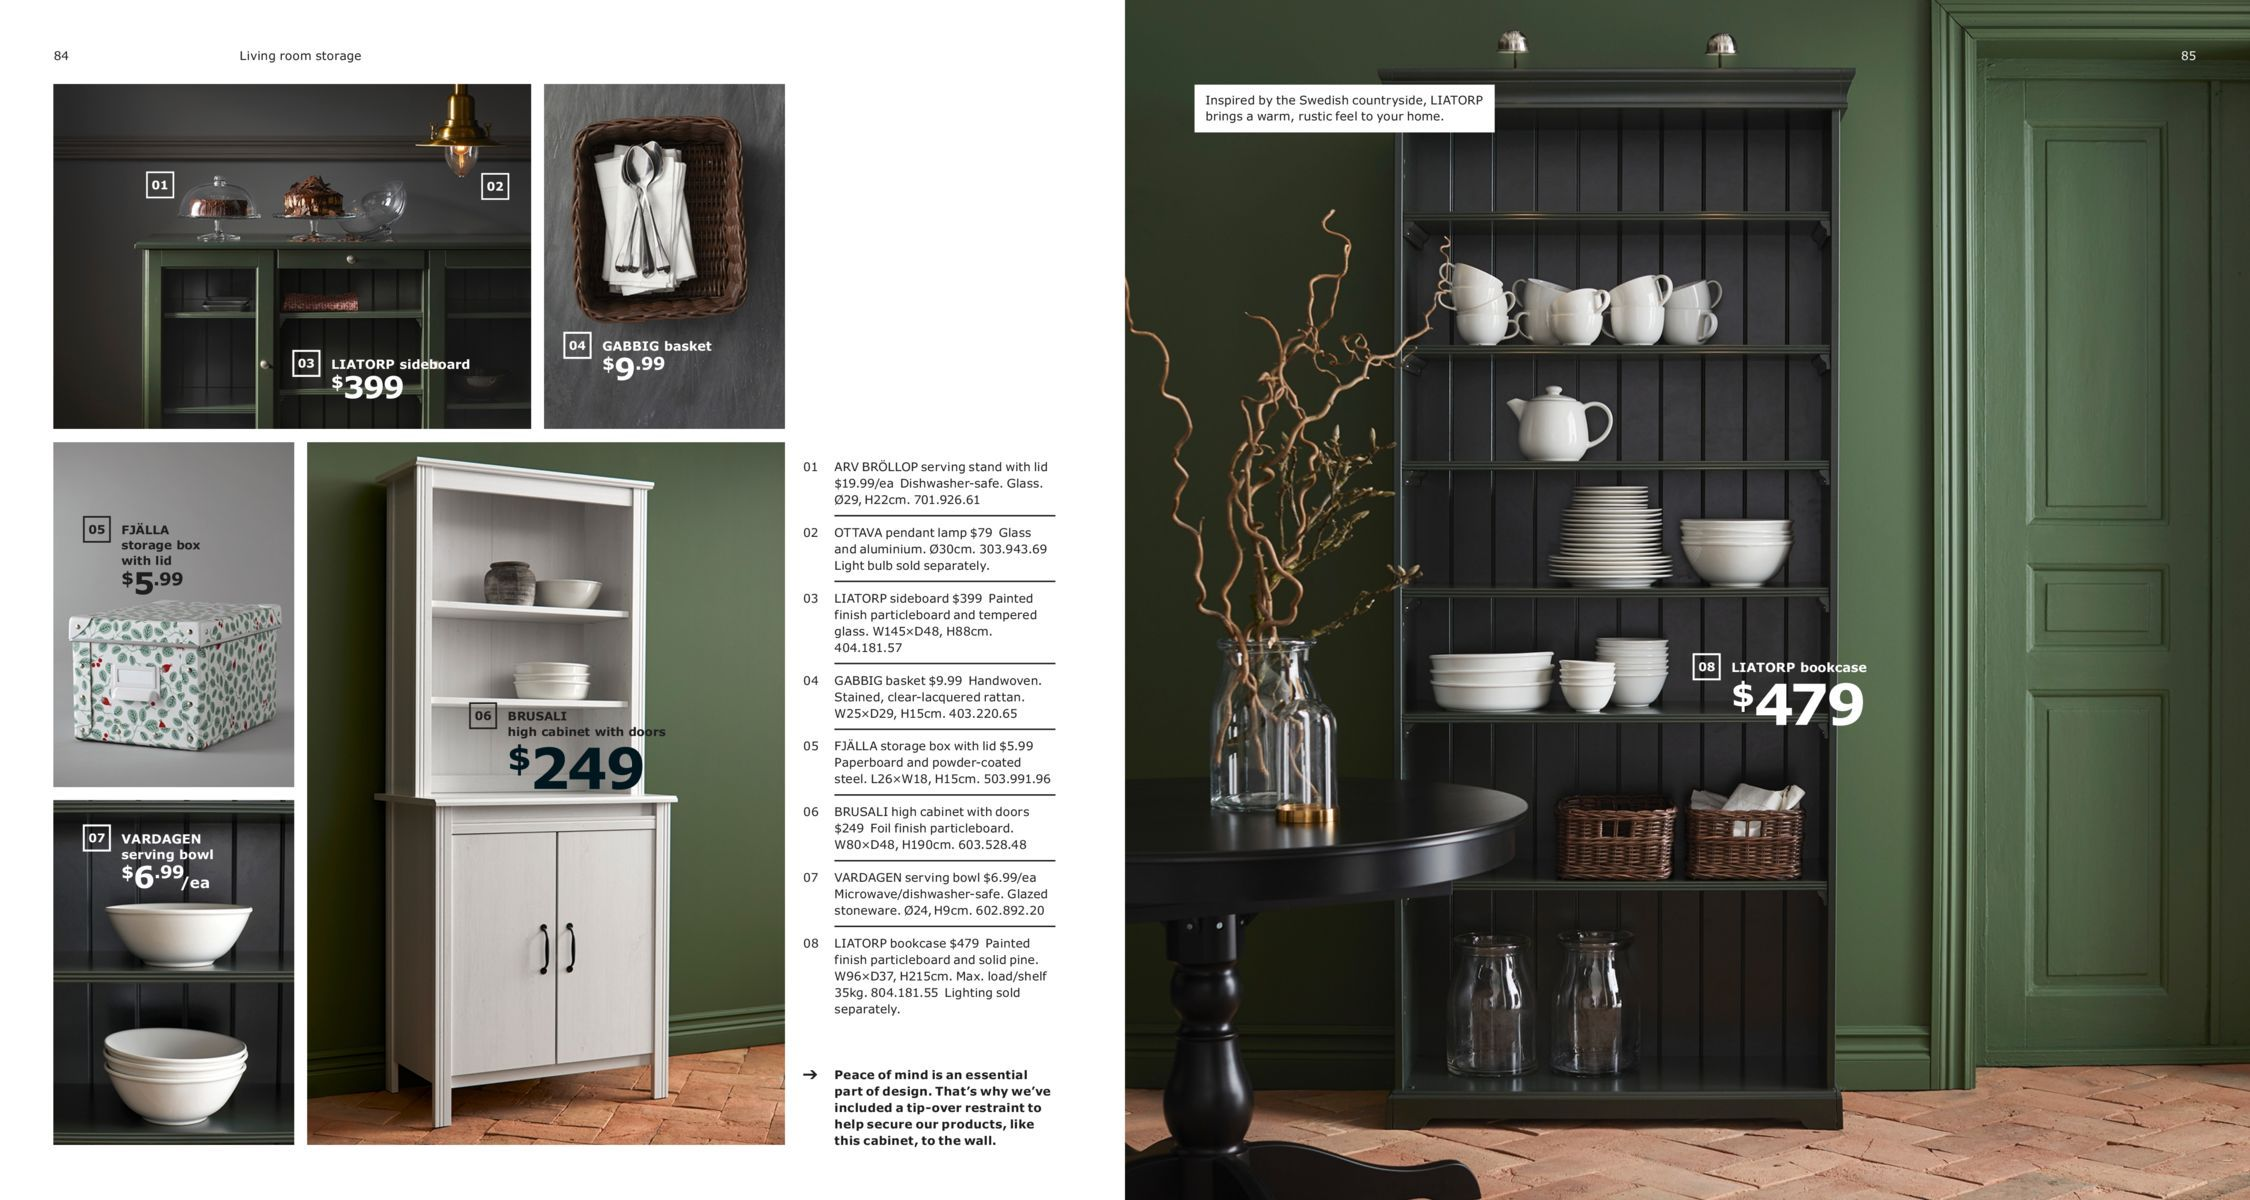 Living room and workspace storage - IKEA Catalogue 2019